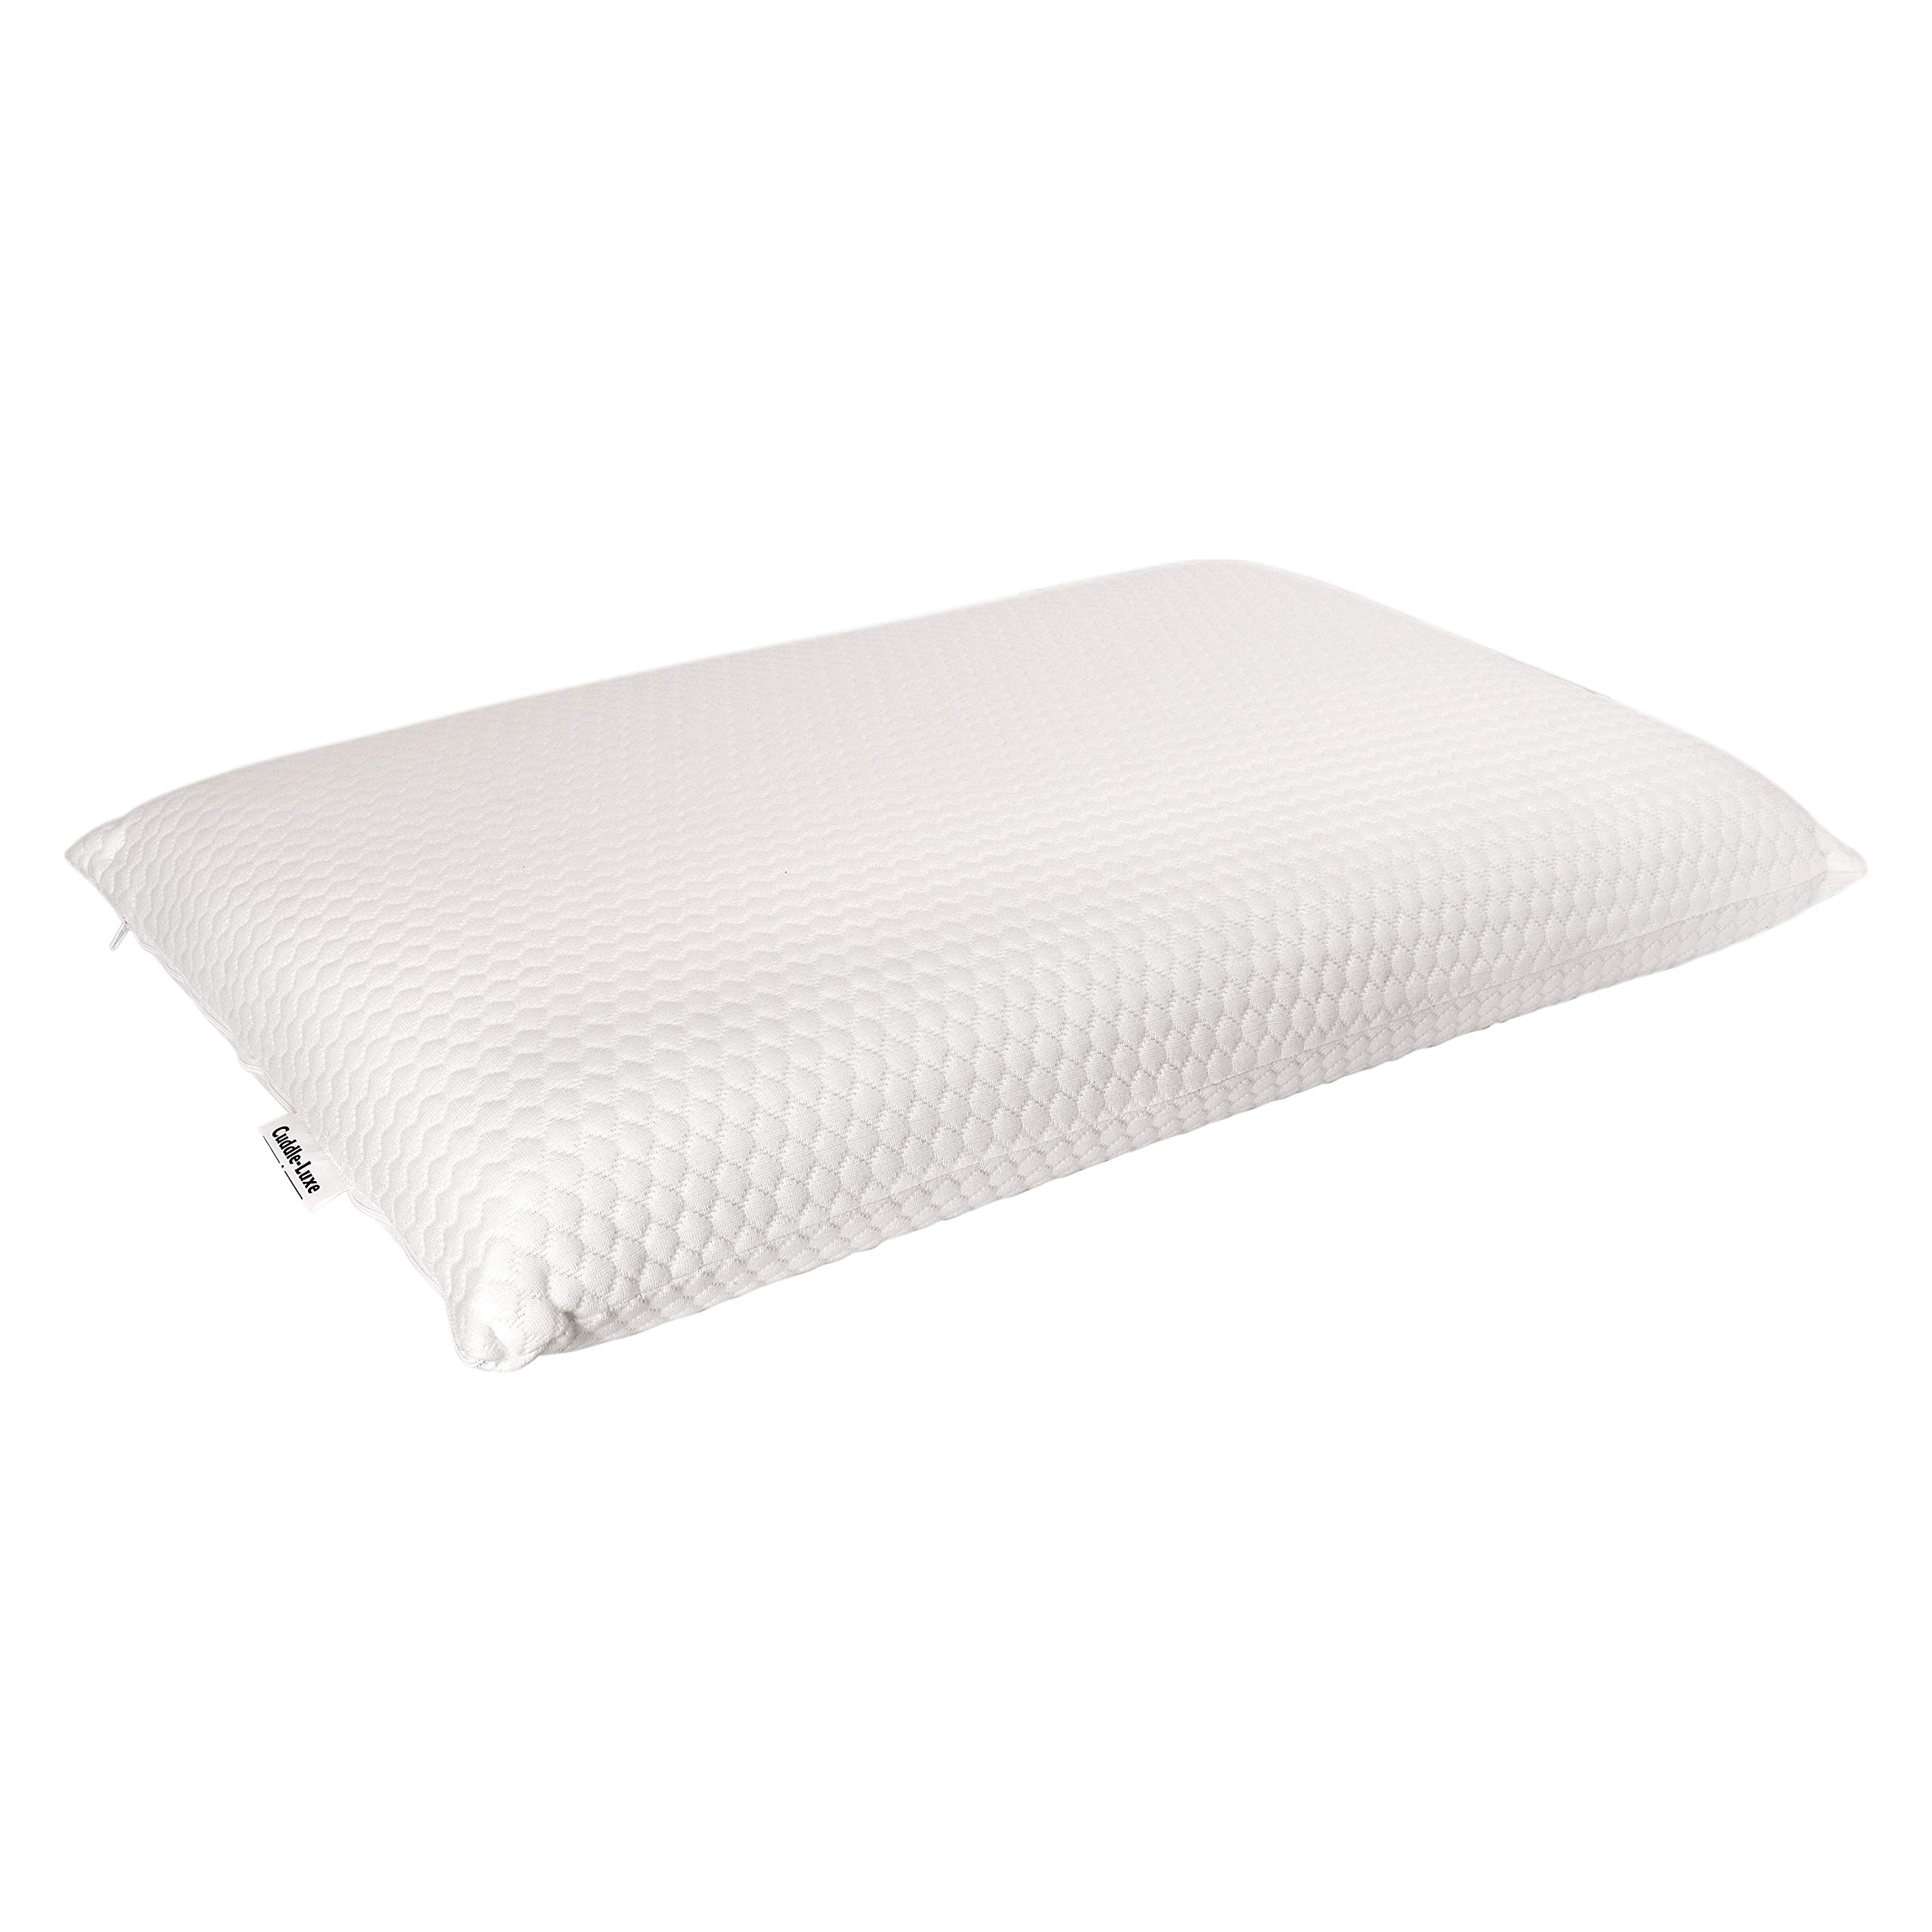 Cuddle-Luxe Premium Gel Infused Memory Foam Thin Pillow Thin and Flat Therapeutic Design for Spinal Alignment, Better Breathing and Enhanced Sleeping with Cotton Cover (King) by Cuddle-Luxe